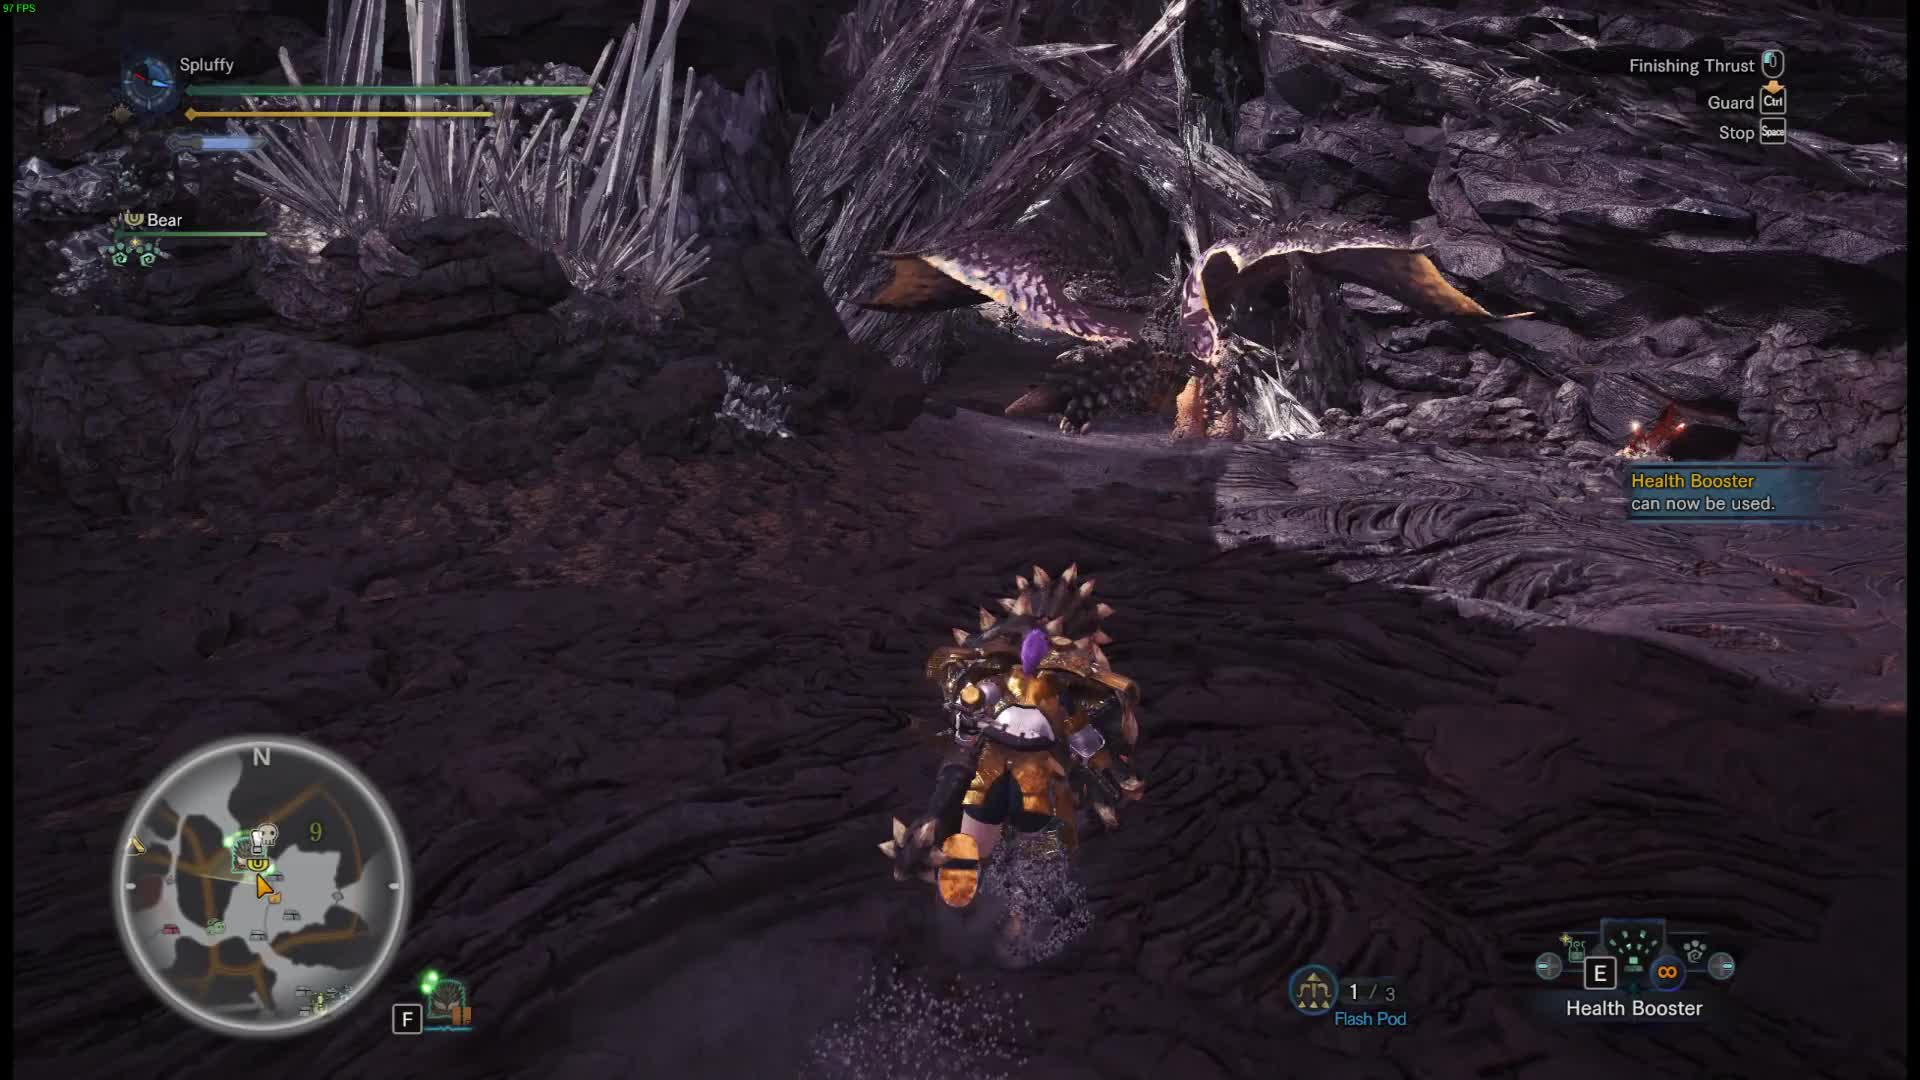 Mhw Nergigante Gifs Search | Search & Share on Homdor